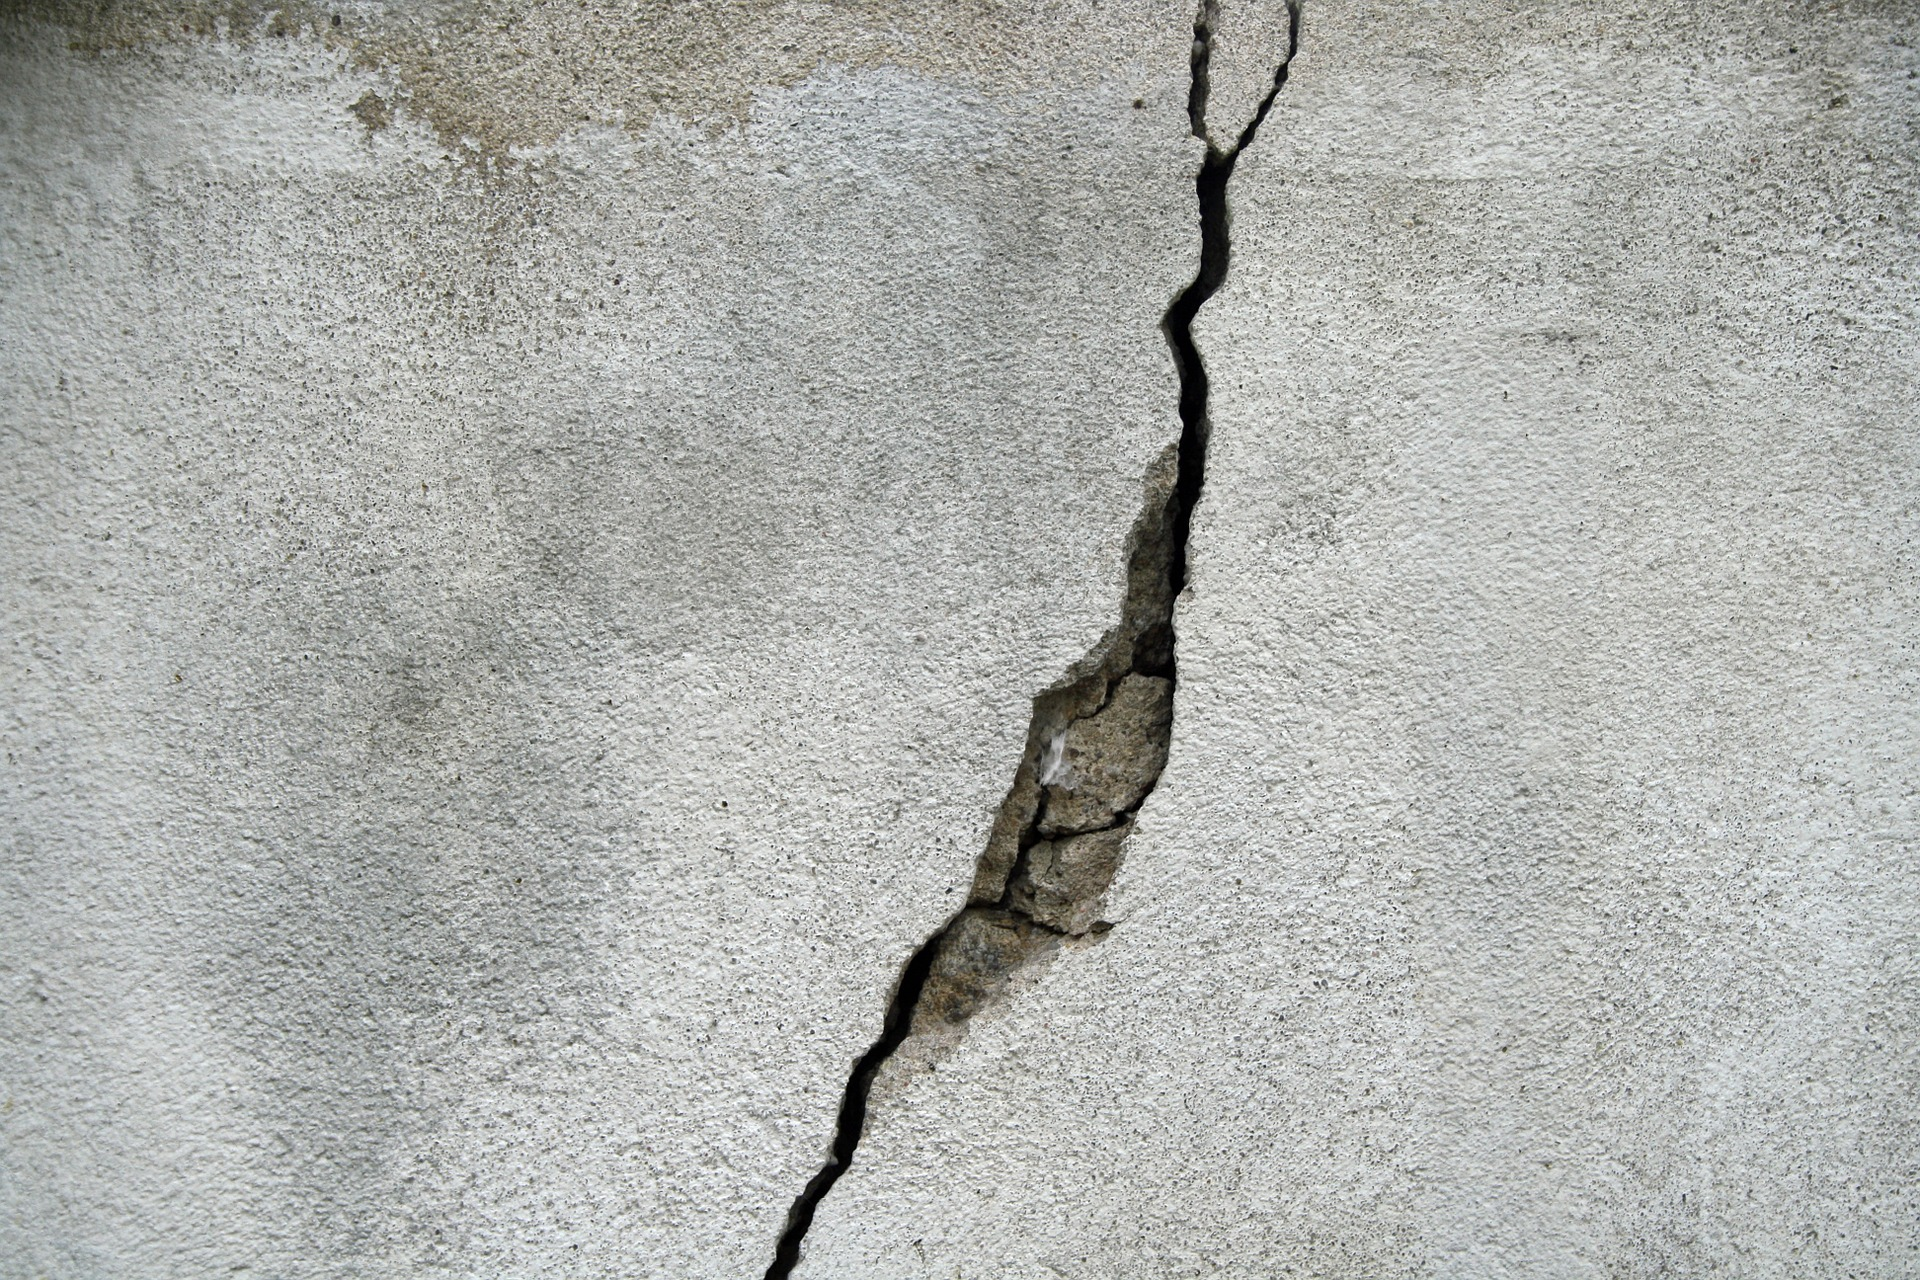 Basement Wall Crack in need of Repair in Providence, RI